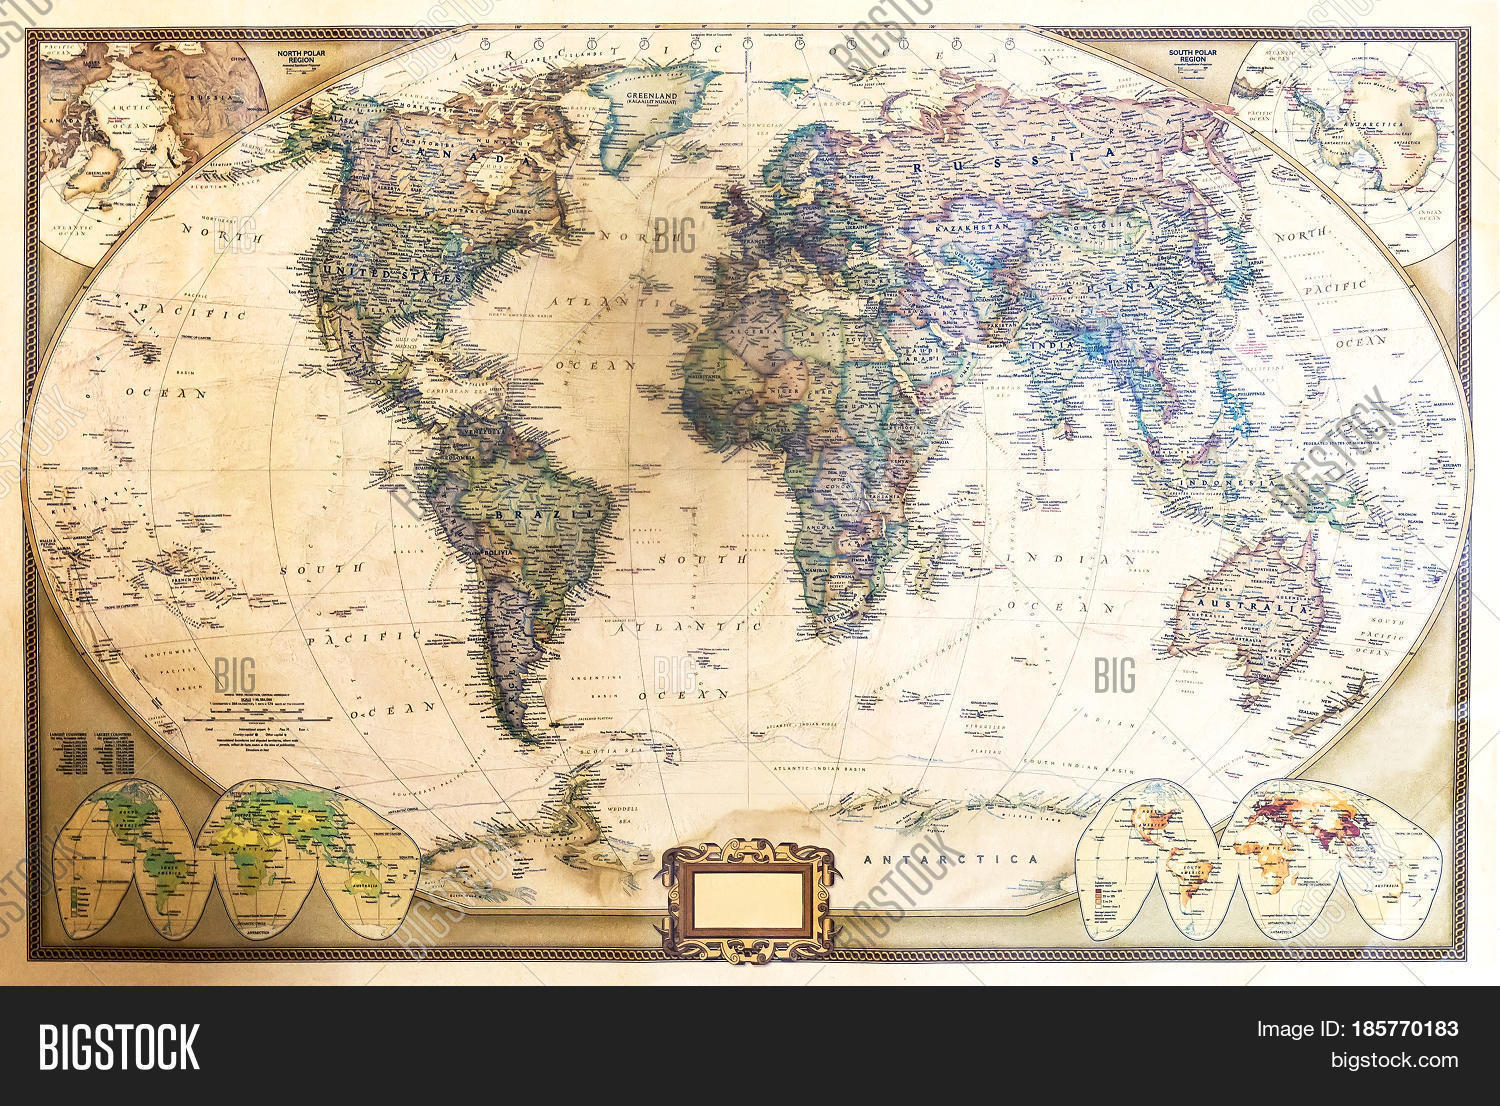 Detailed world map two hemispheres image photo bigstock detailed world map with two hemispheres which depicts the continents seas oceans names of countries their gumiabroncs Image collections